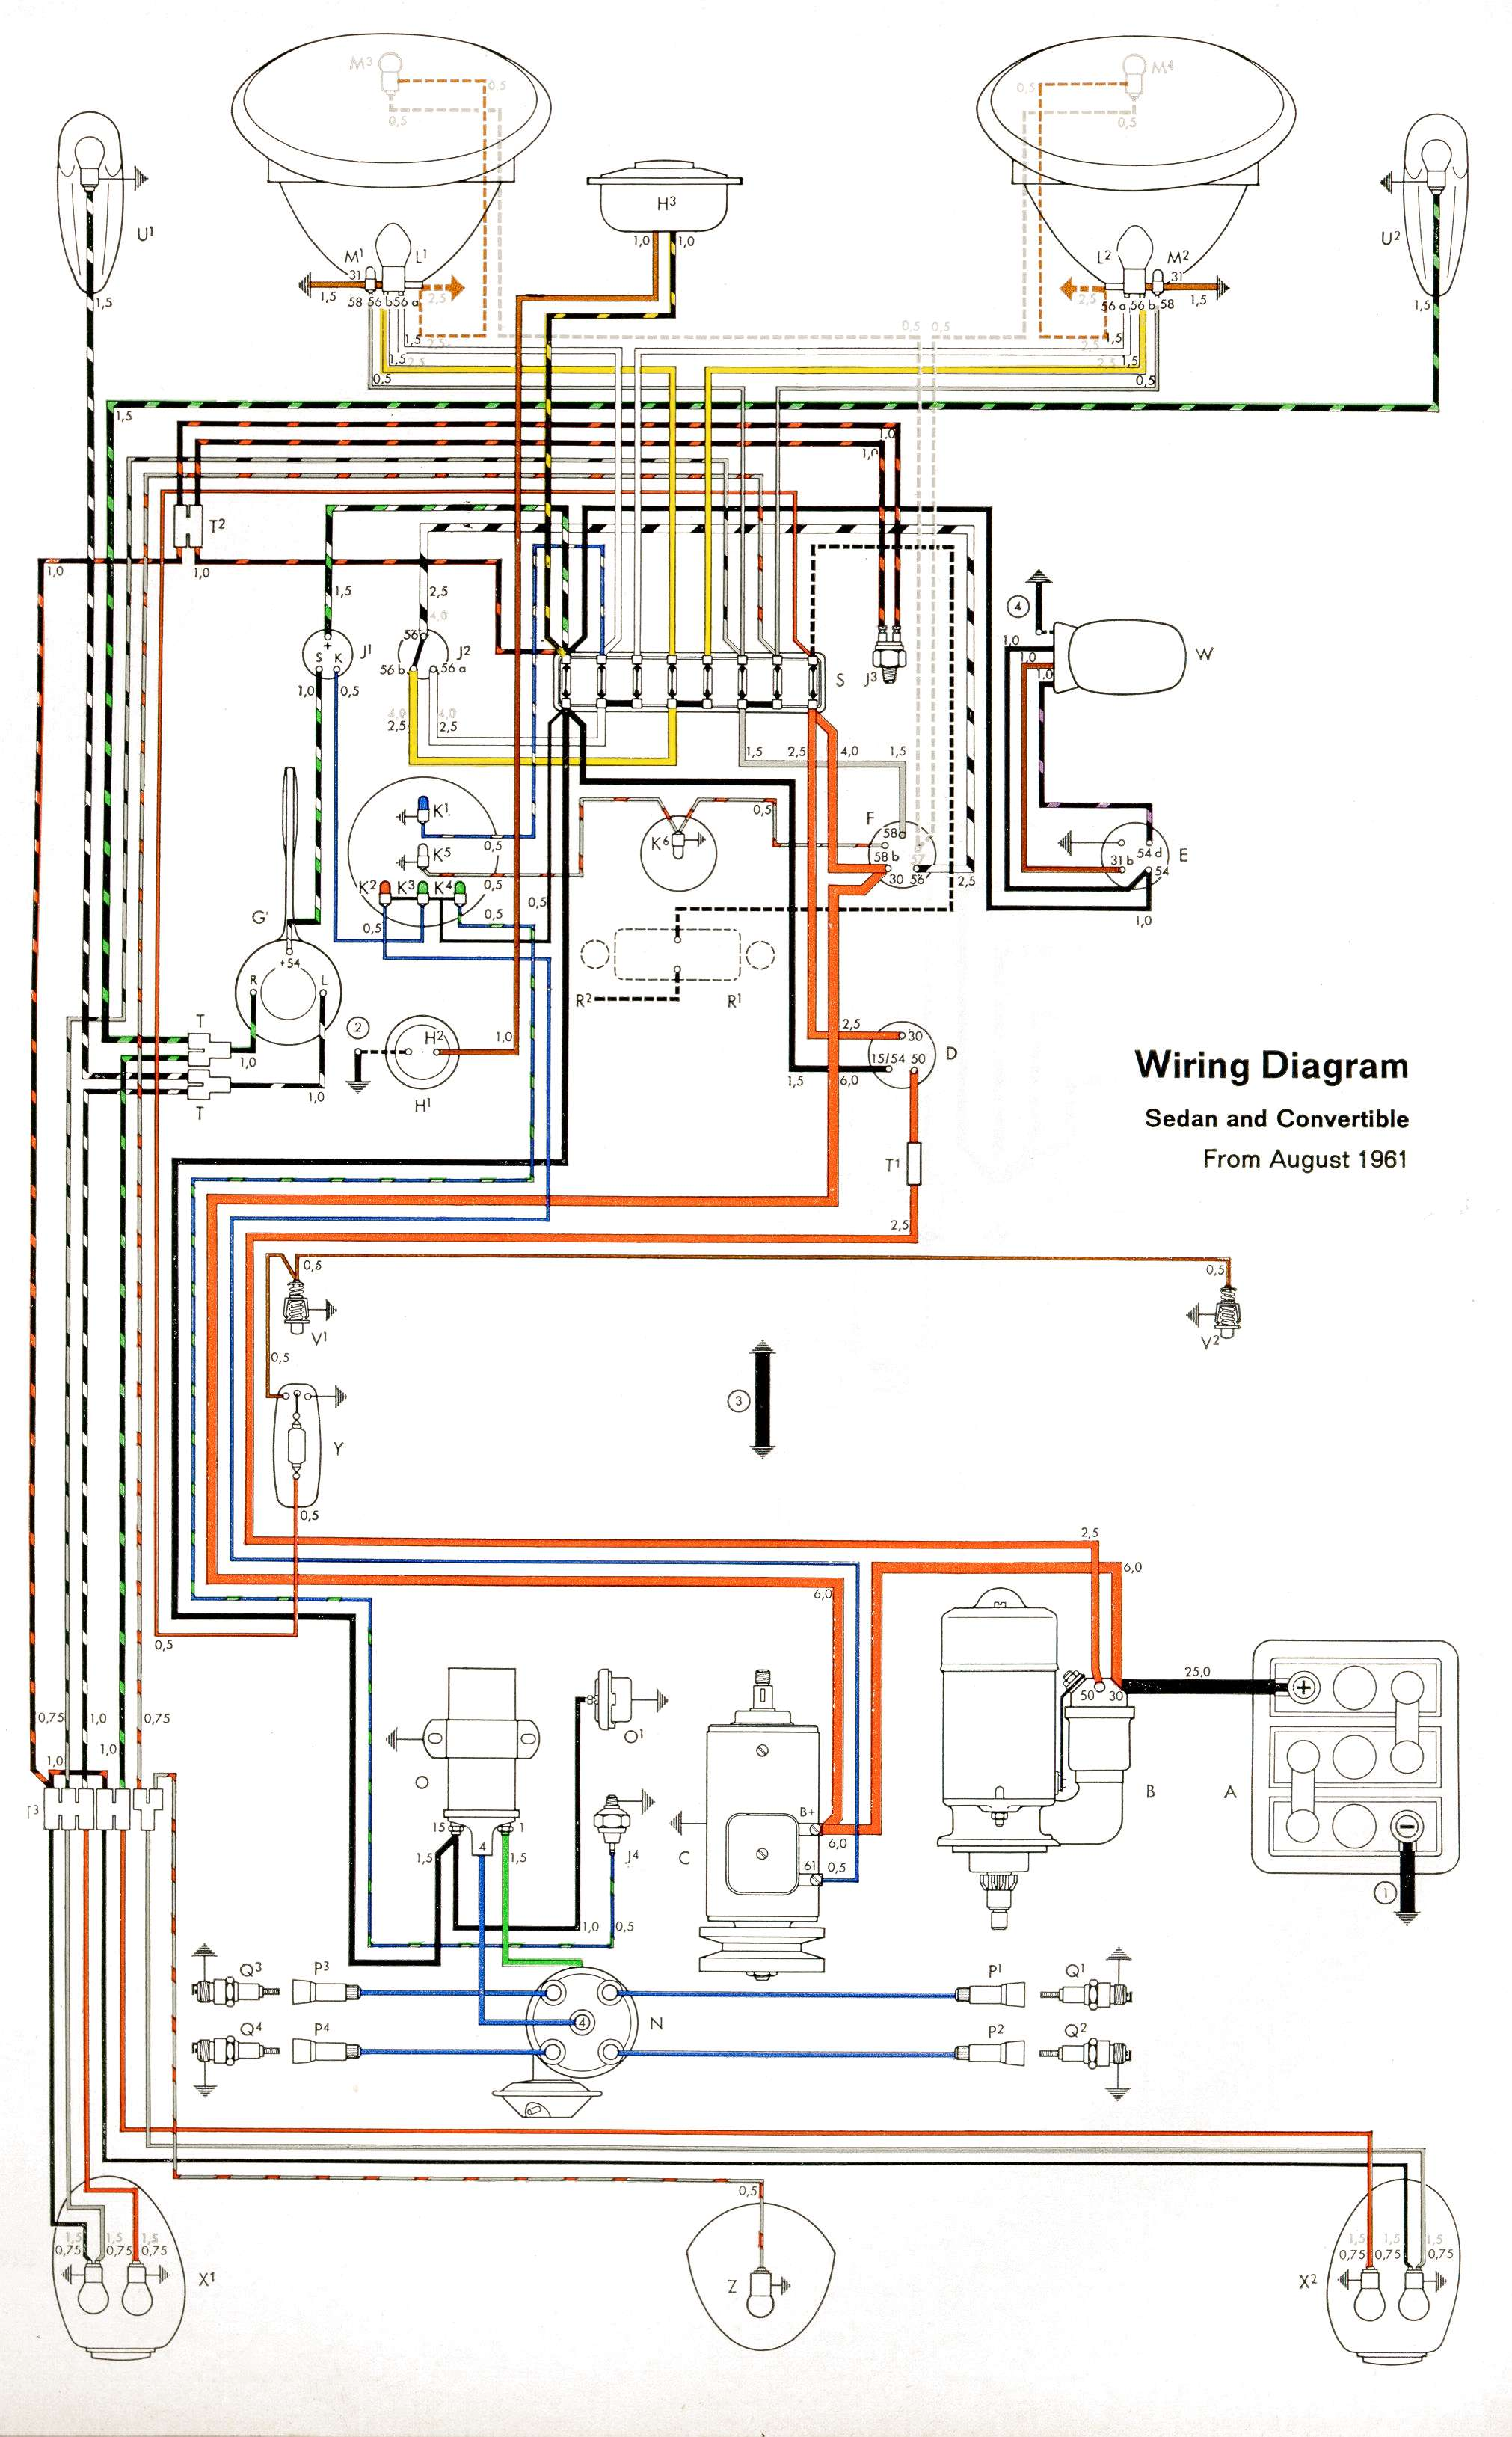 Wiring together with 1974 Vw Beetle Alternator Wiring Diagram furthermore Viewtopic moreover VW Tech Article Headlight Switches likewise 69 VW Bug Wiring Diagram. on 1971 vw super beetle ignition wiring diagram